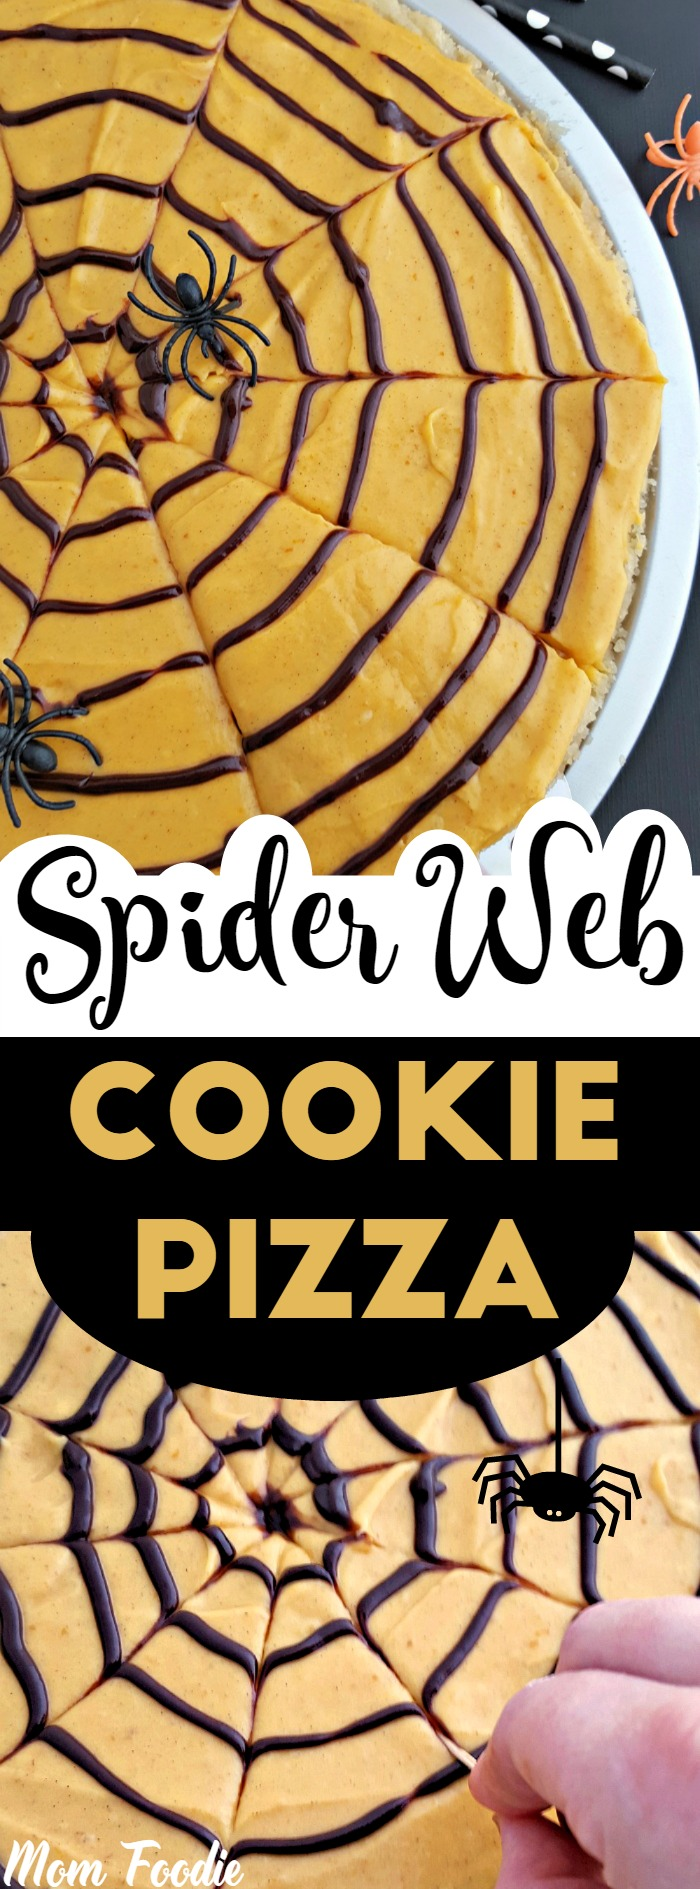 Spider Web Cookie Pizza